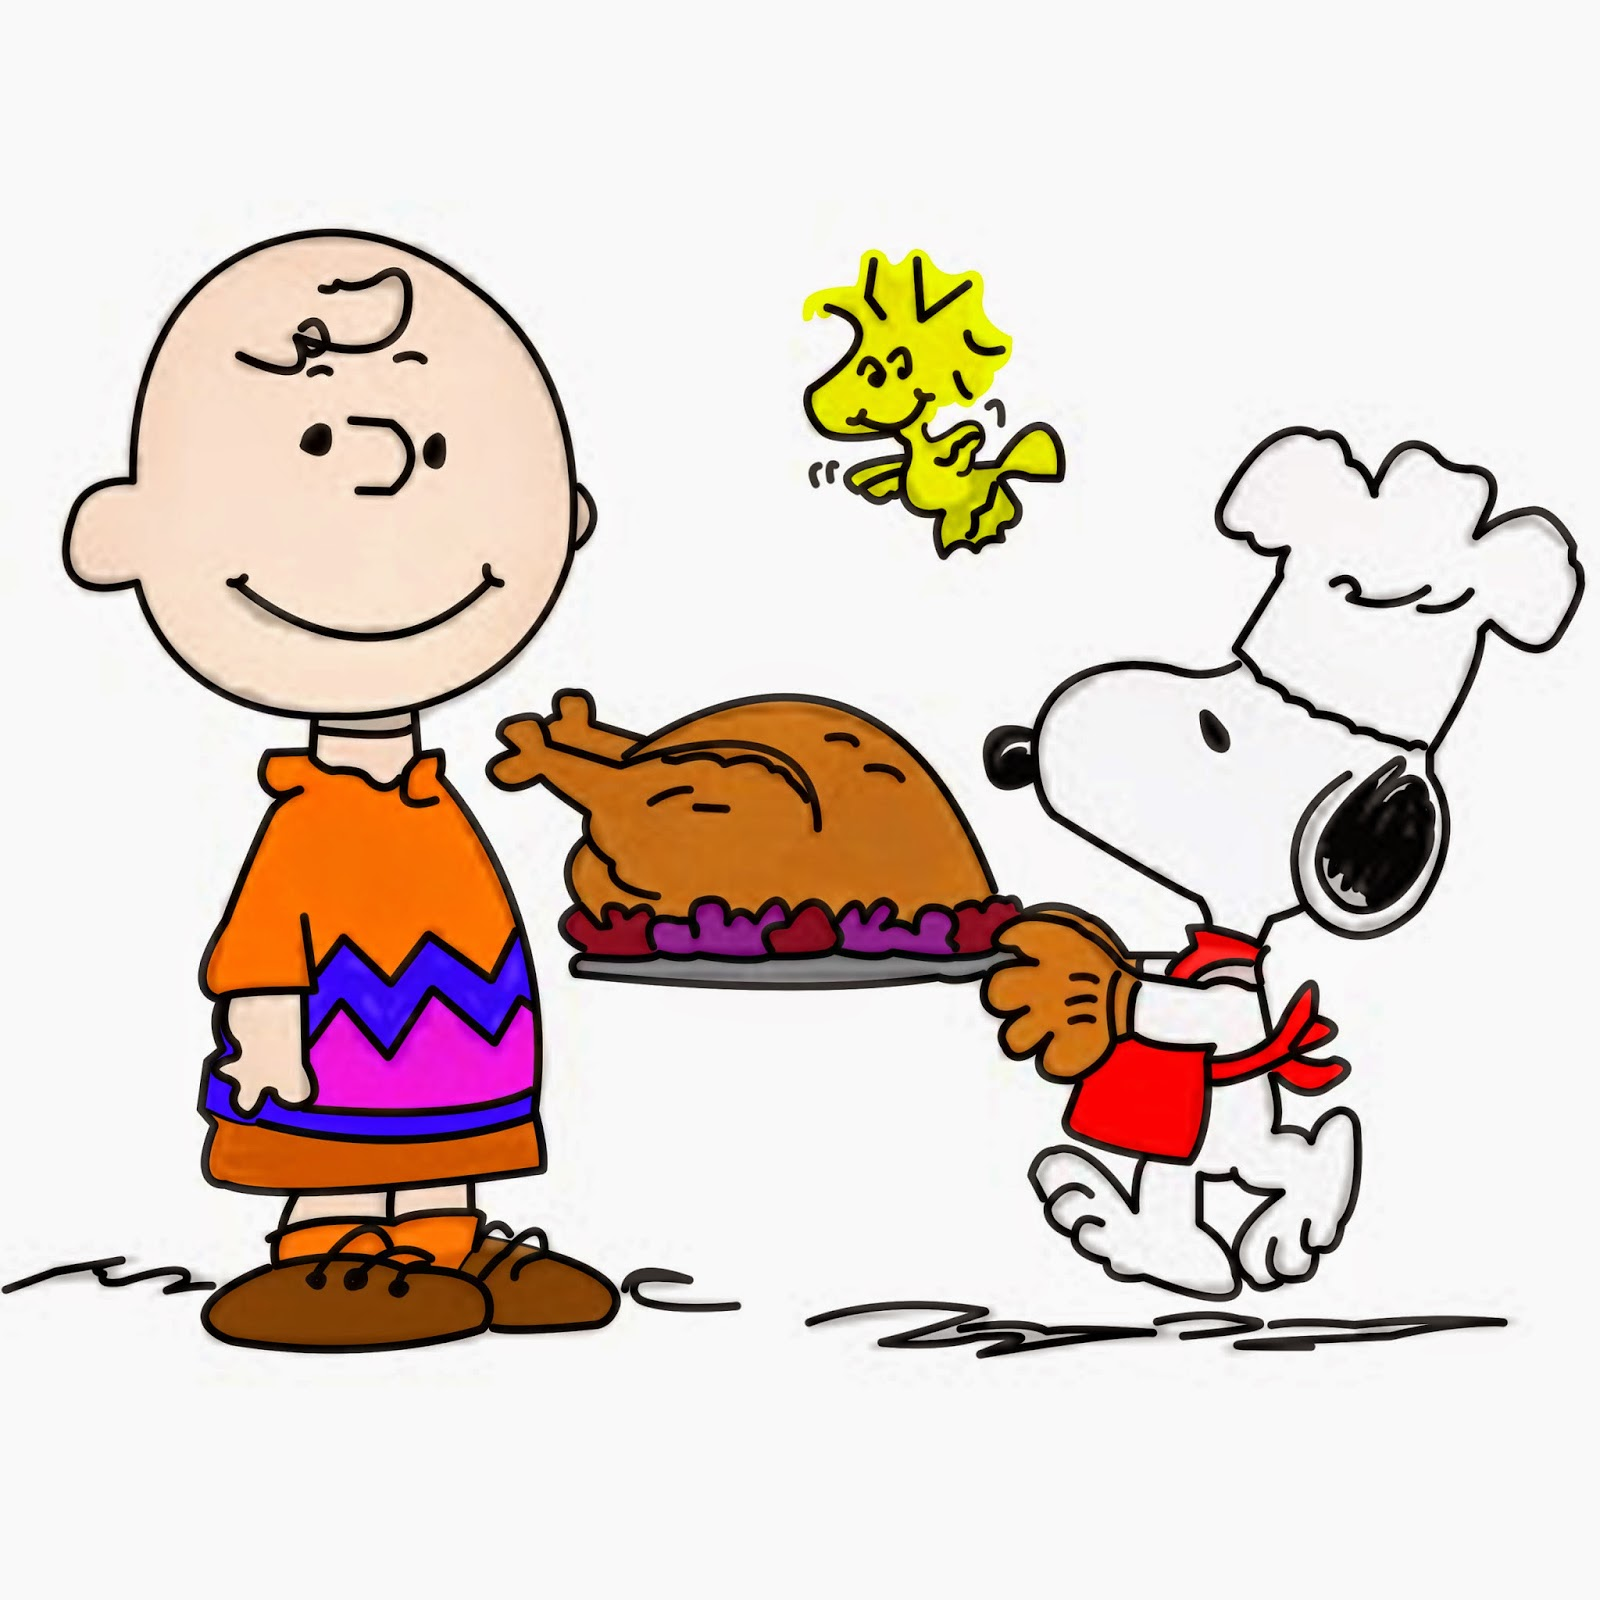 Inspirational clipart charlie brown Charlie Cooking Inspiration Clipart Clipart